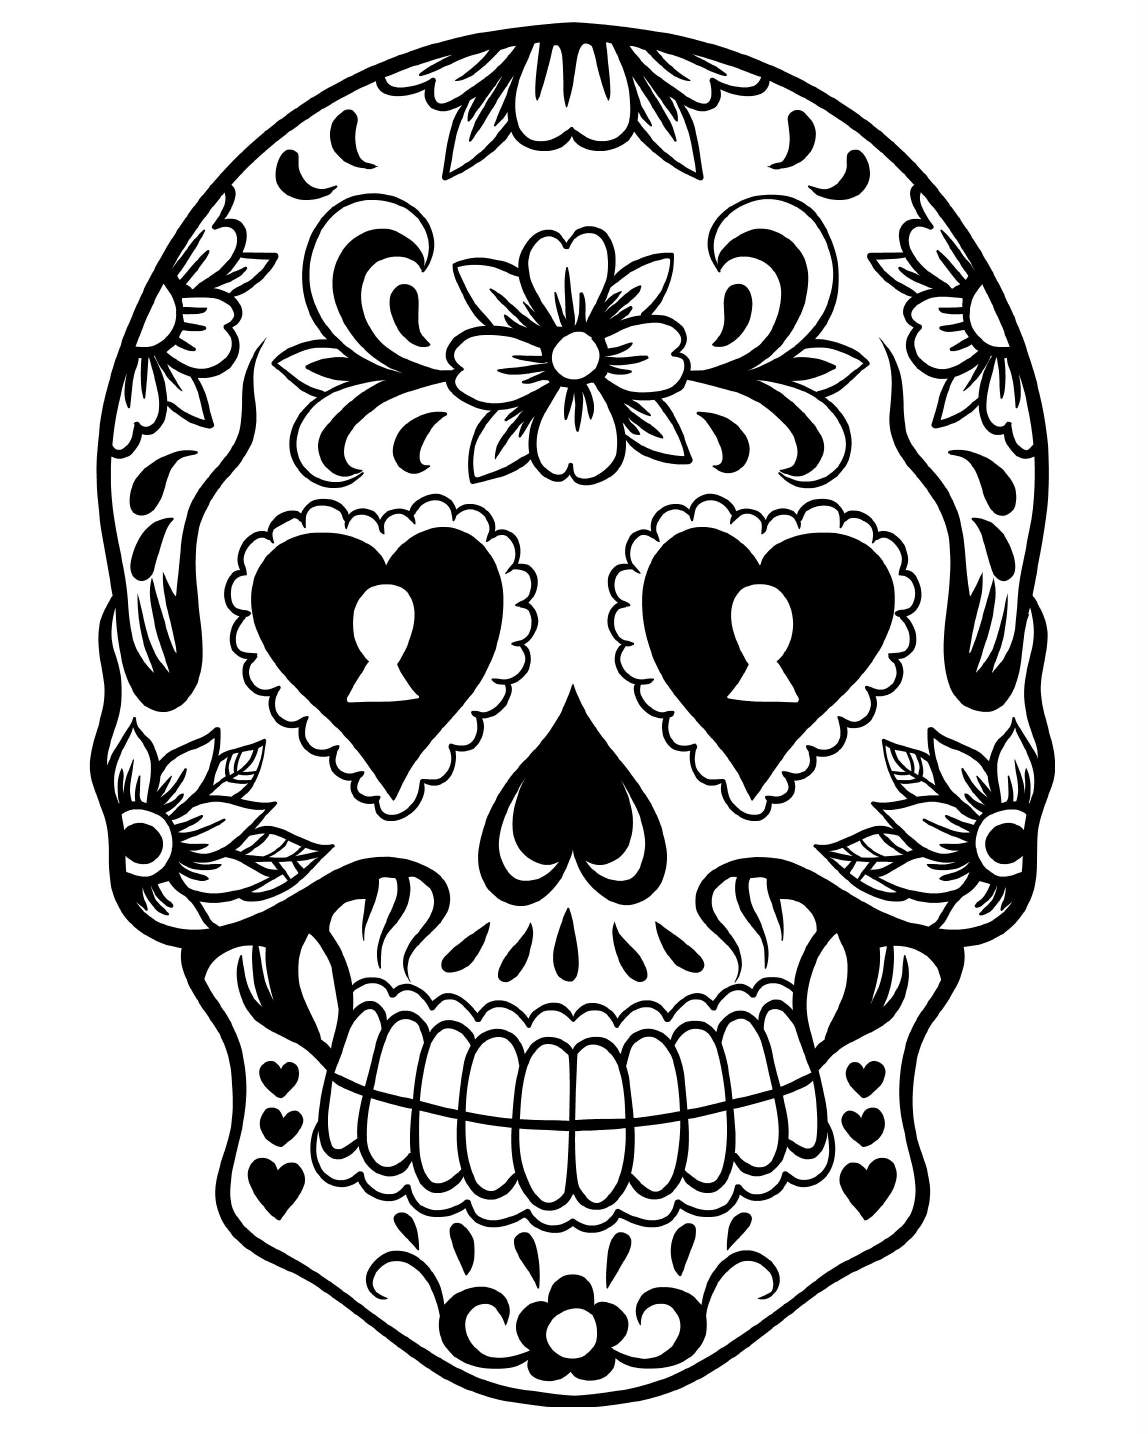 free printable day of the dead coloring pages Free Printable Day of the Dead Coloring Pages   Best Coloring  free printable day of the dead coloring pages